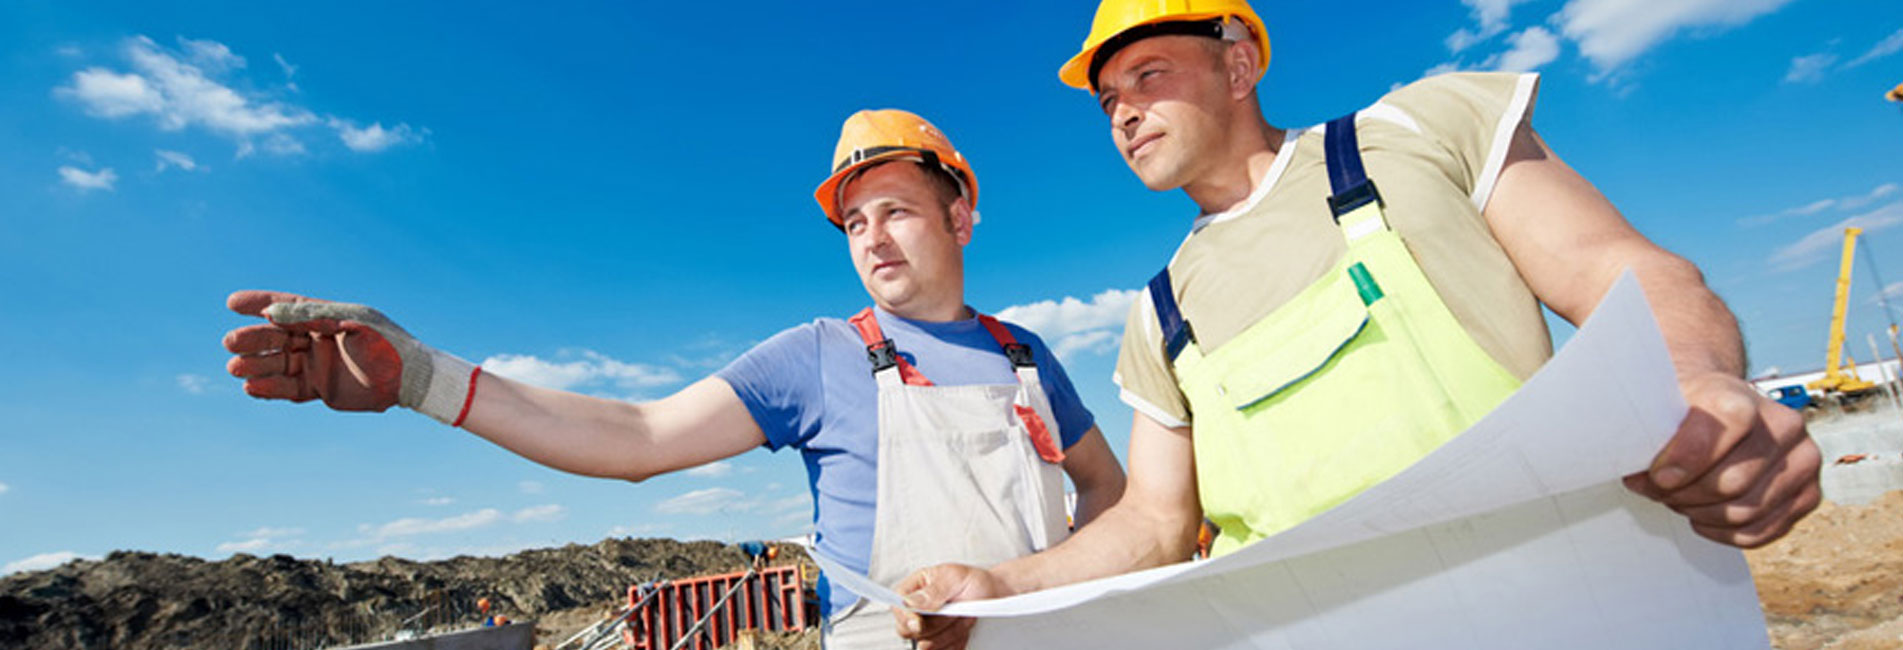 Property Inspections and Reports Wollongong, Building Certifiers Kiama, Building Safety Inspectors Albion Park